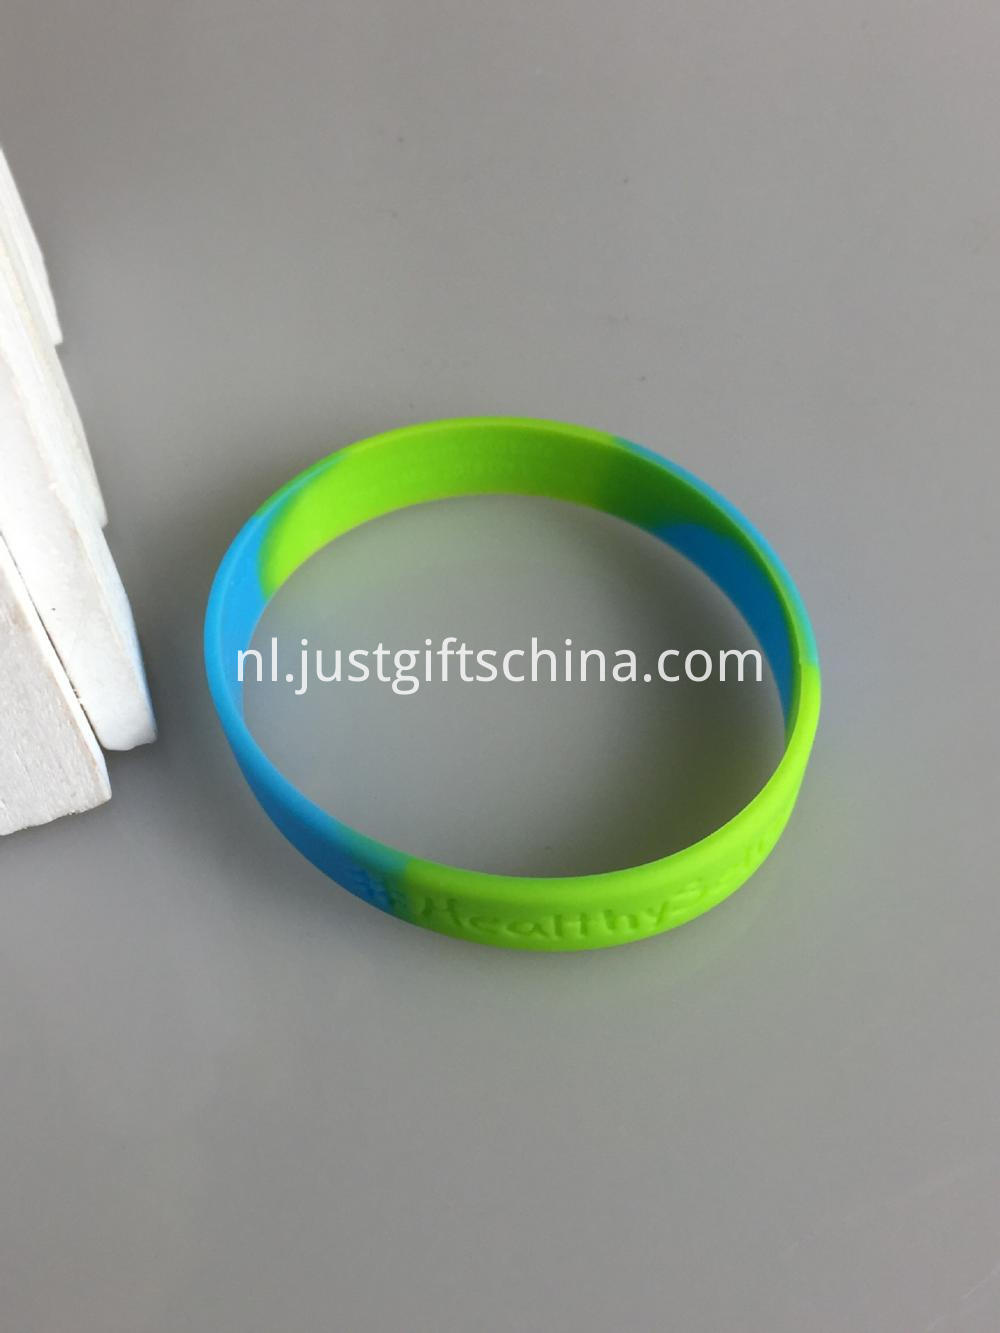 Segment Debossed Silicone Wristbands - 180mmx12mmx2mm (3)